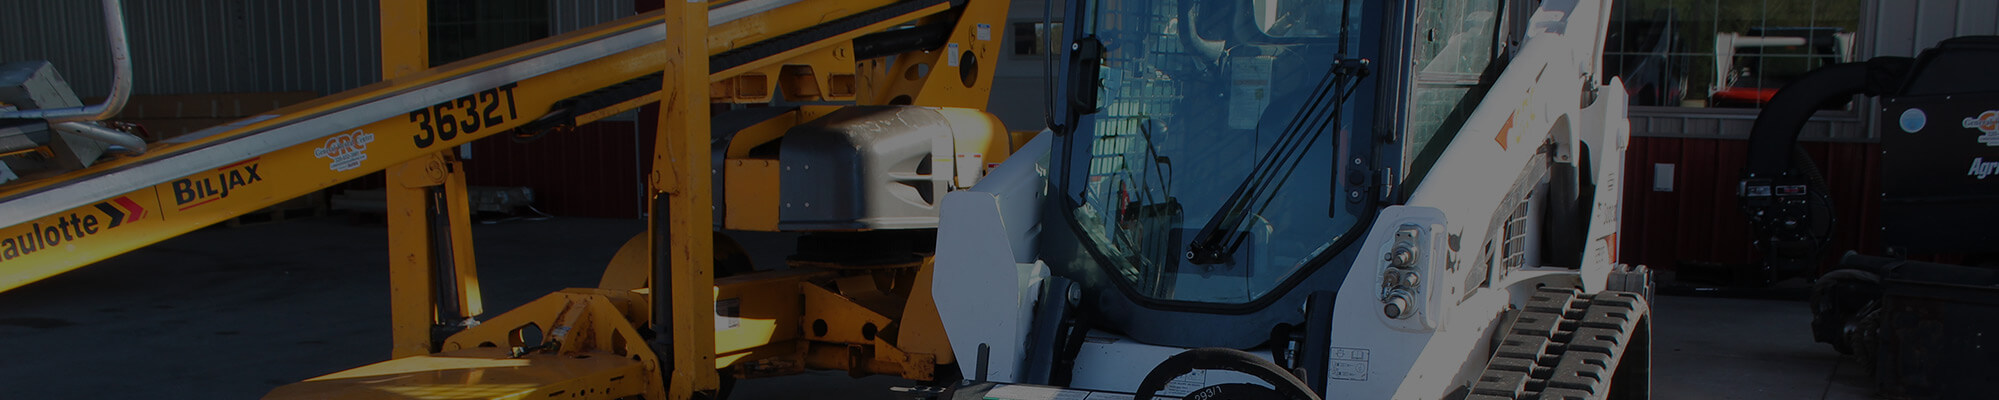 Bobcat available for rent from General Rental Center in Little Falls, MN